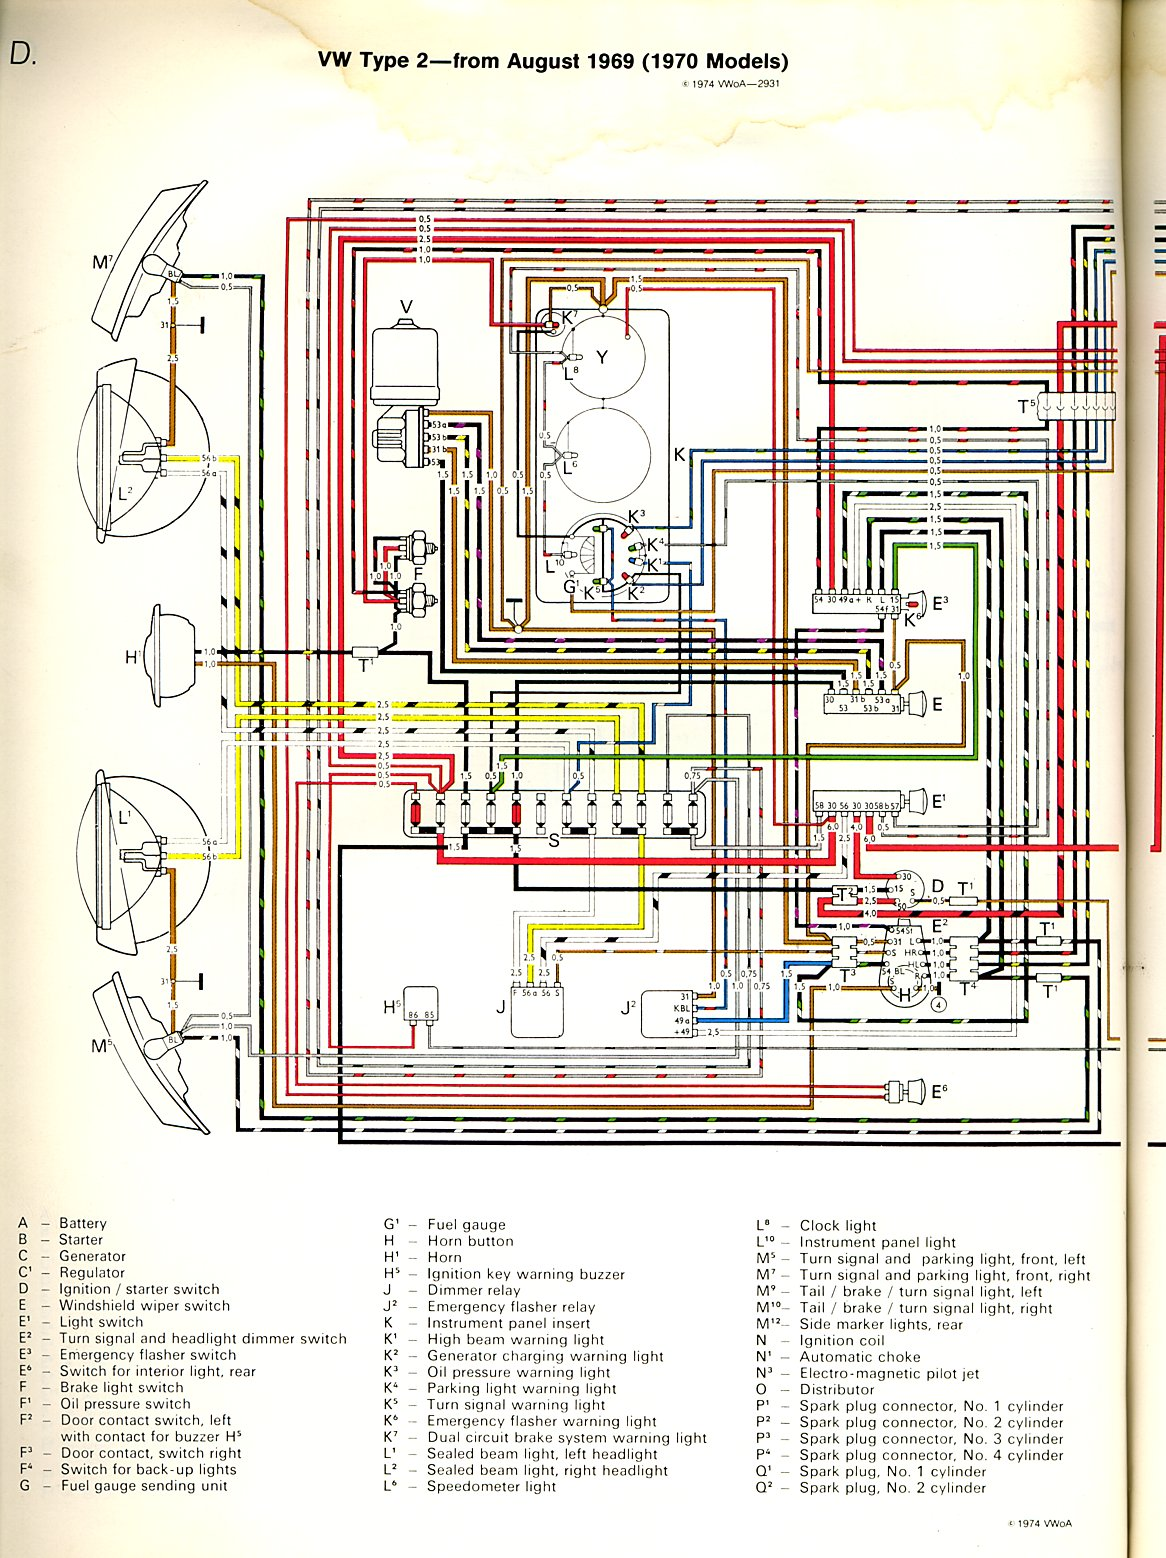 thesamba.com :: type 2 wiring diagrams 1970 vw wiring harness free download diagram schematic 1970 vw wiring digram #3